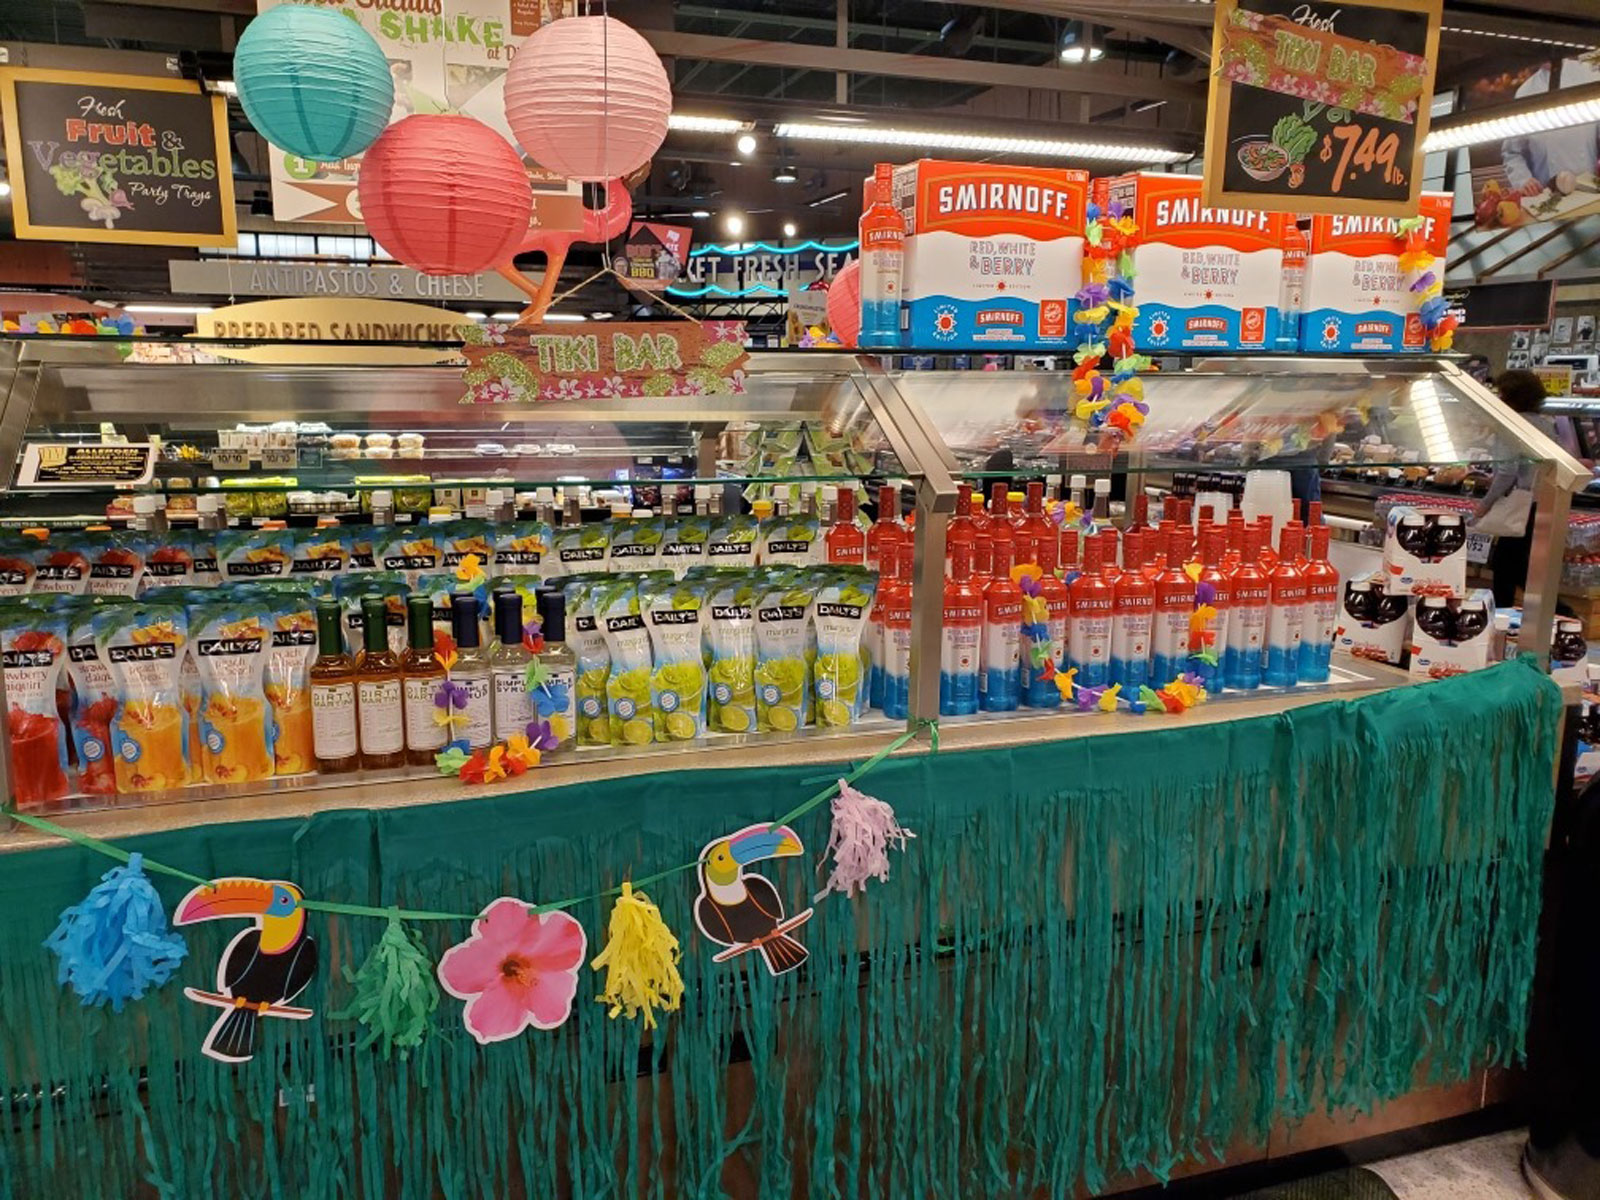 Picture of salad bar filled with alcohol